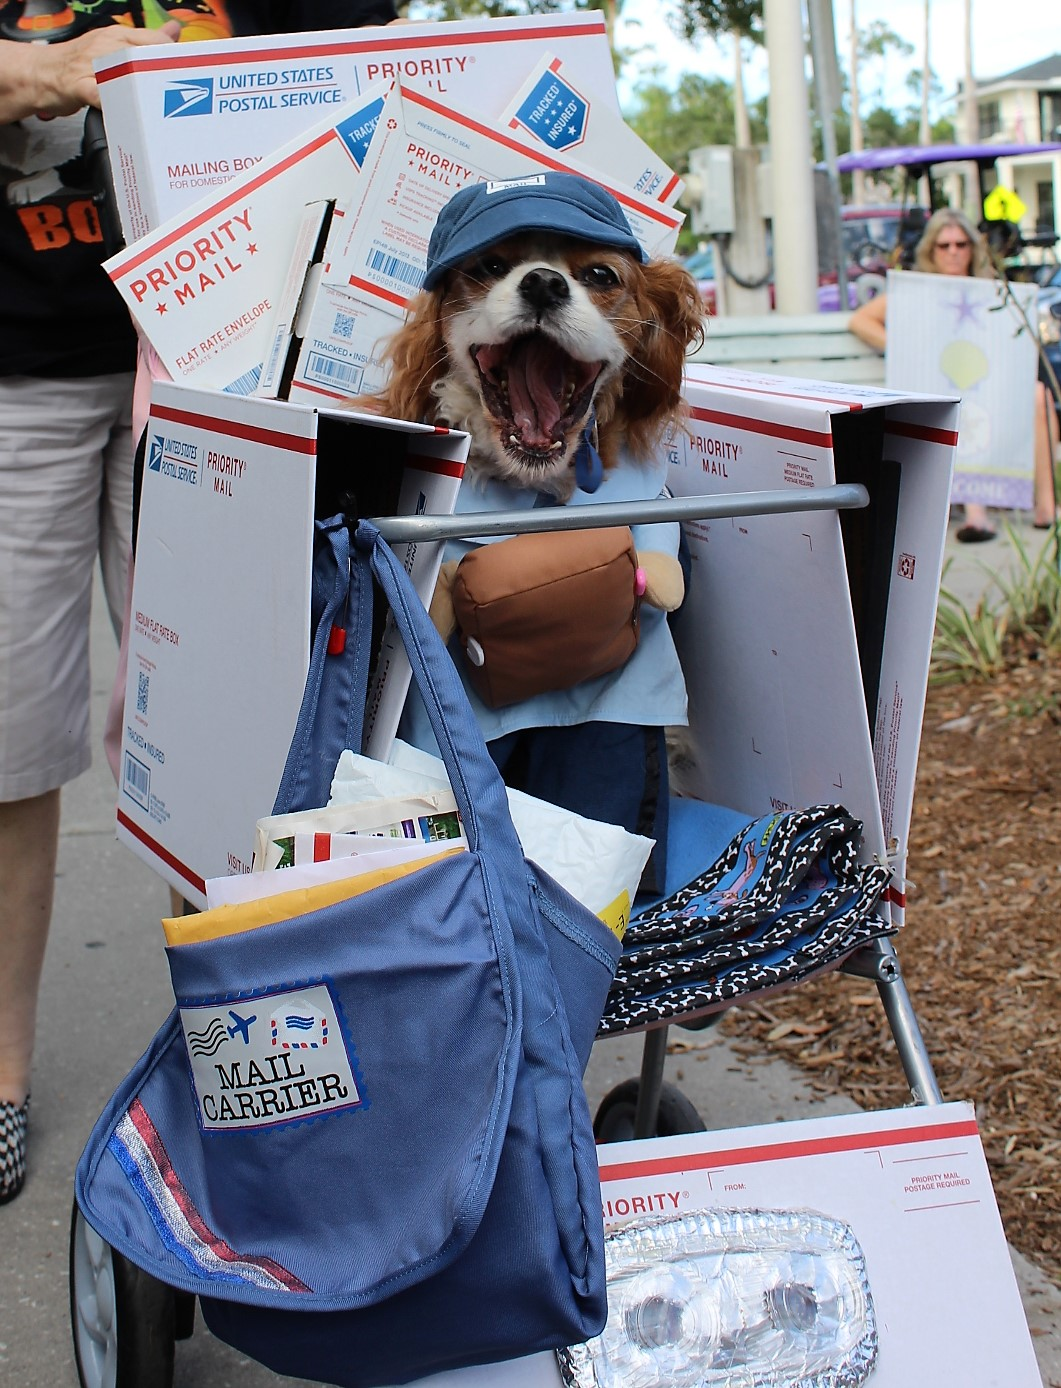 A small dog in a US Postal Worker costume surrounded by pieces of mail.